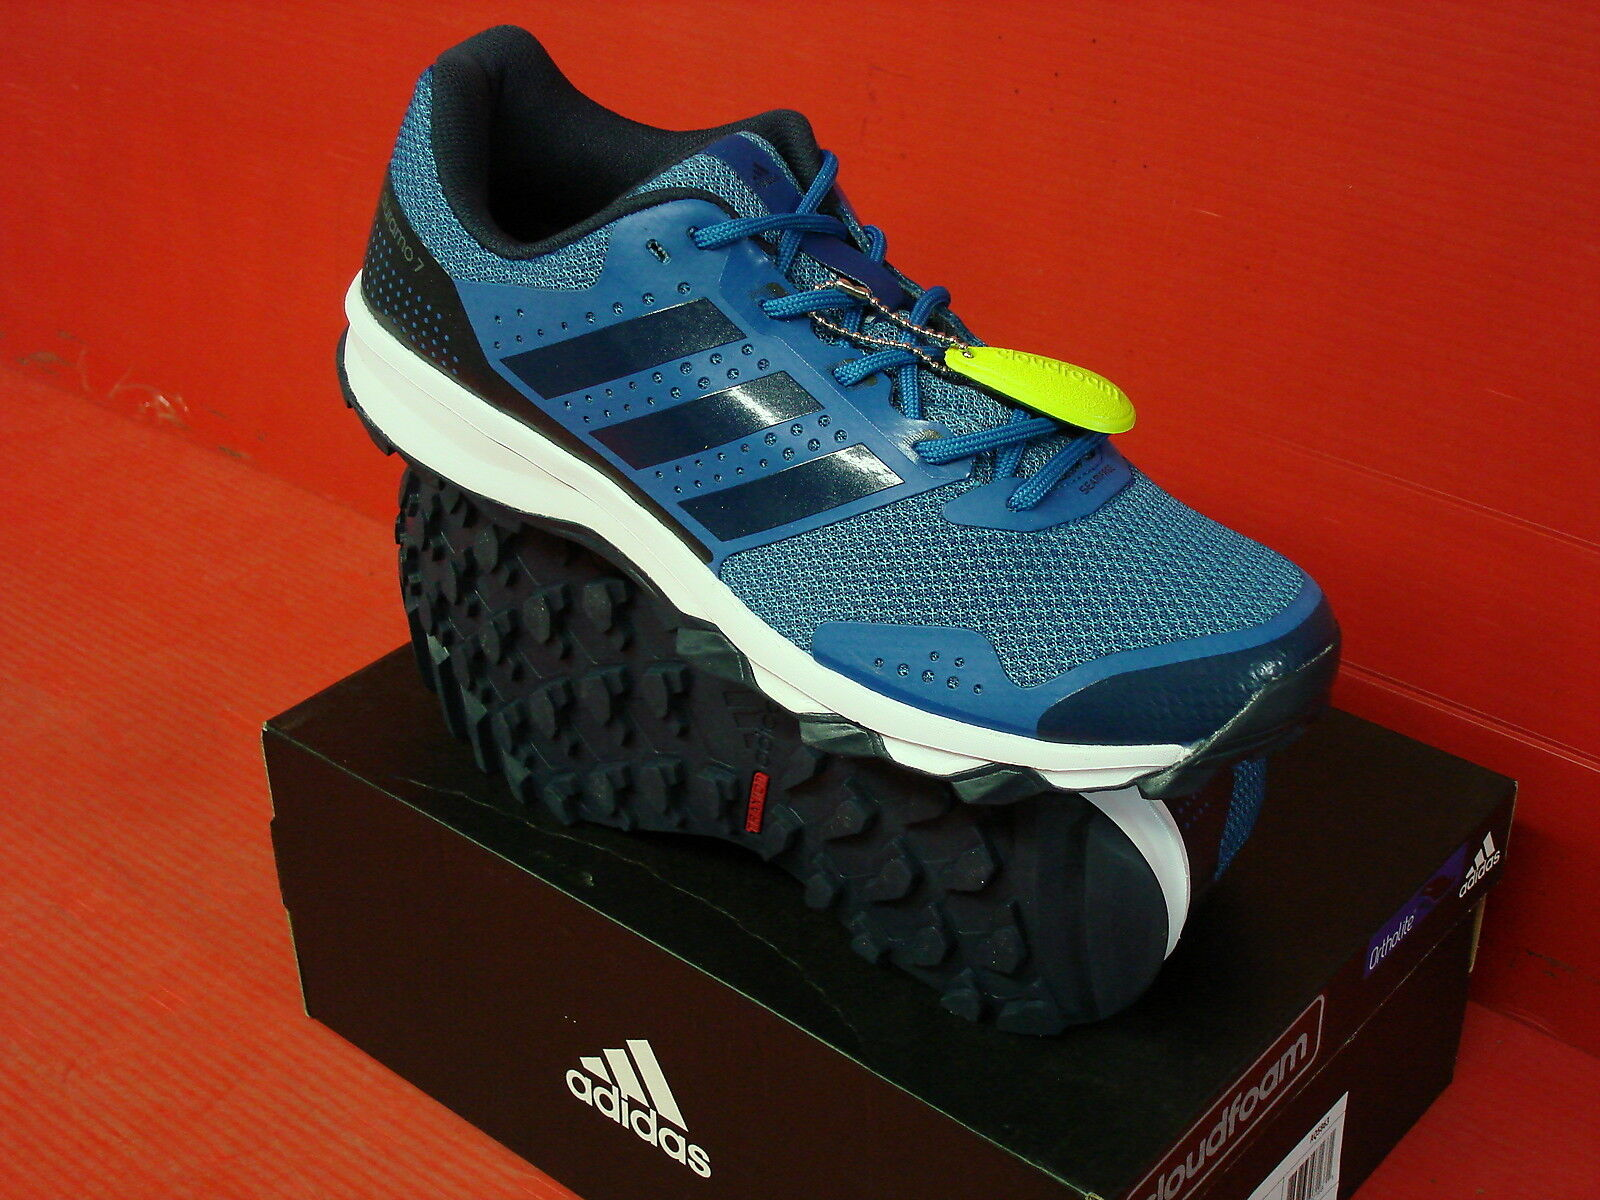 ADIDAS DURAMO 7 TRAIL M MENS RUNNING AQ5863 New shoes for men and women, limited time discount